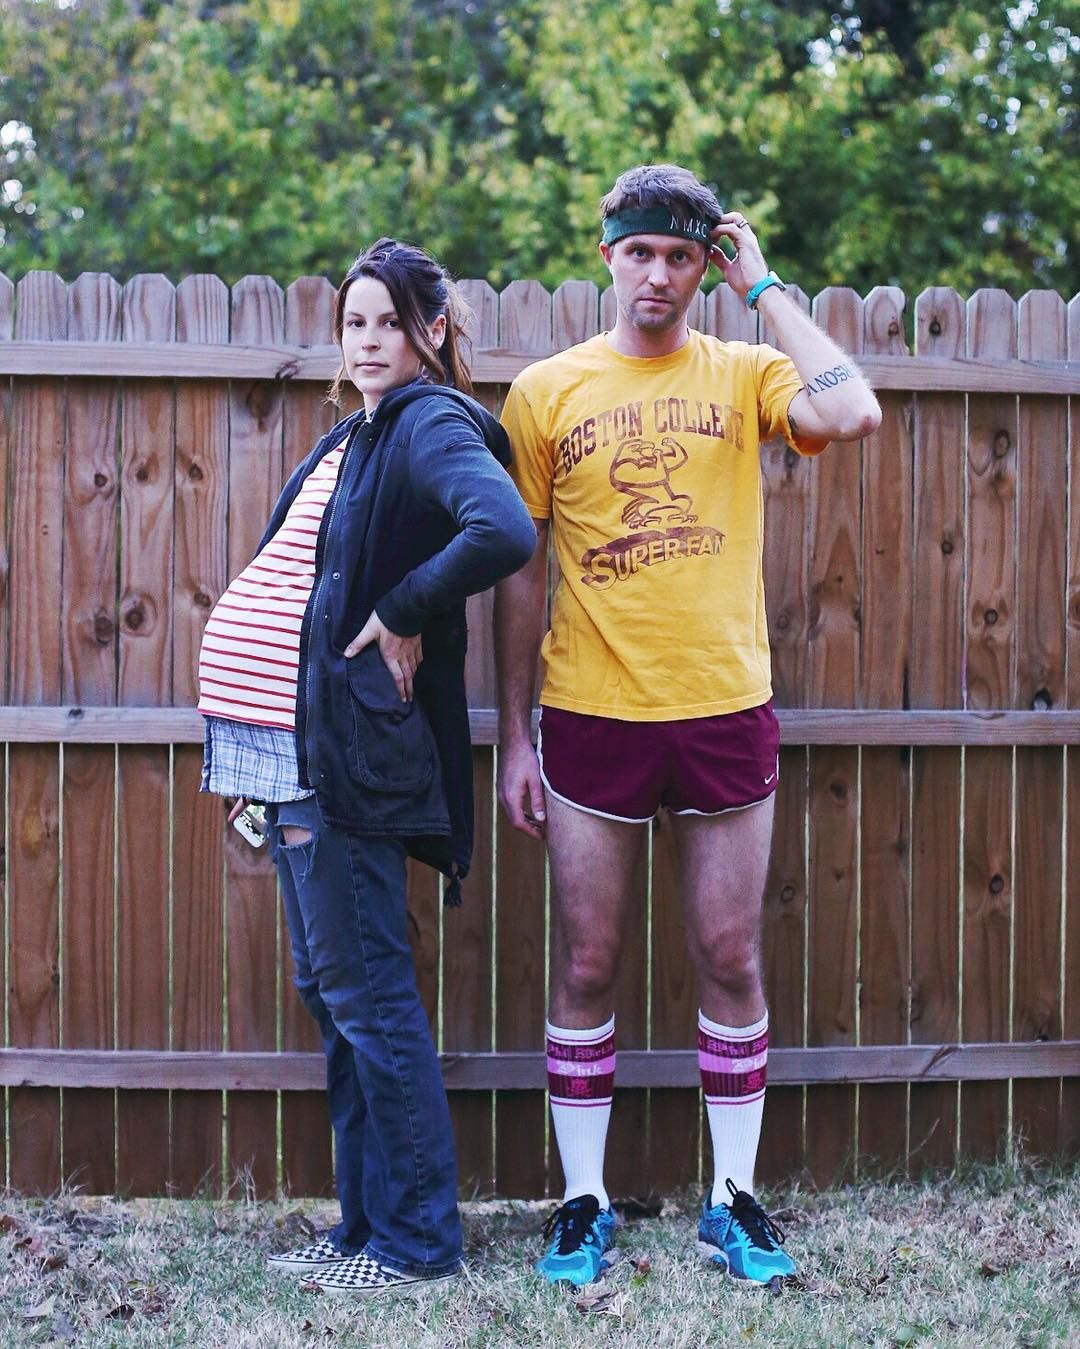 Pregnancy Halloween costume maternity Halloween costume Juno Halloween costume Juno. @brittanyviklund  sc 1 st  Pinterest & Pregnancy Halloween costume maternity Halloween costume Juno ...